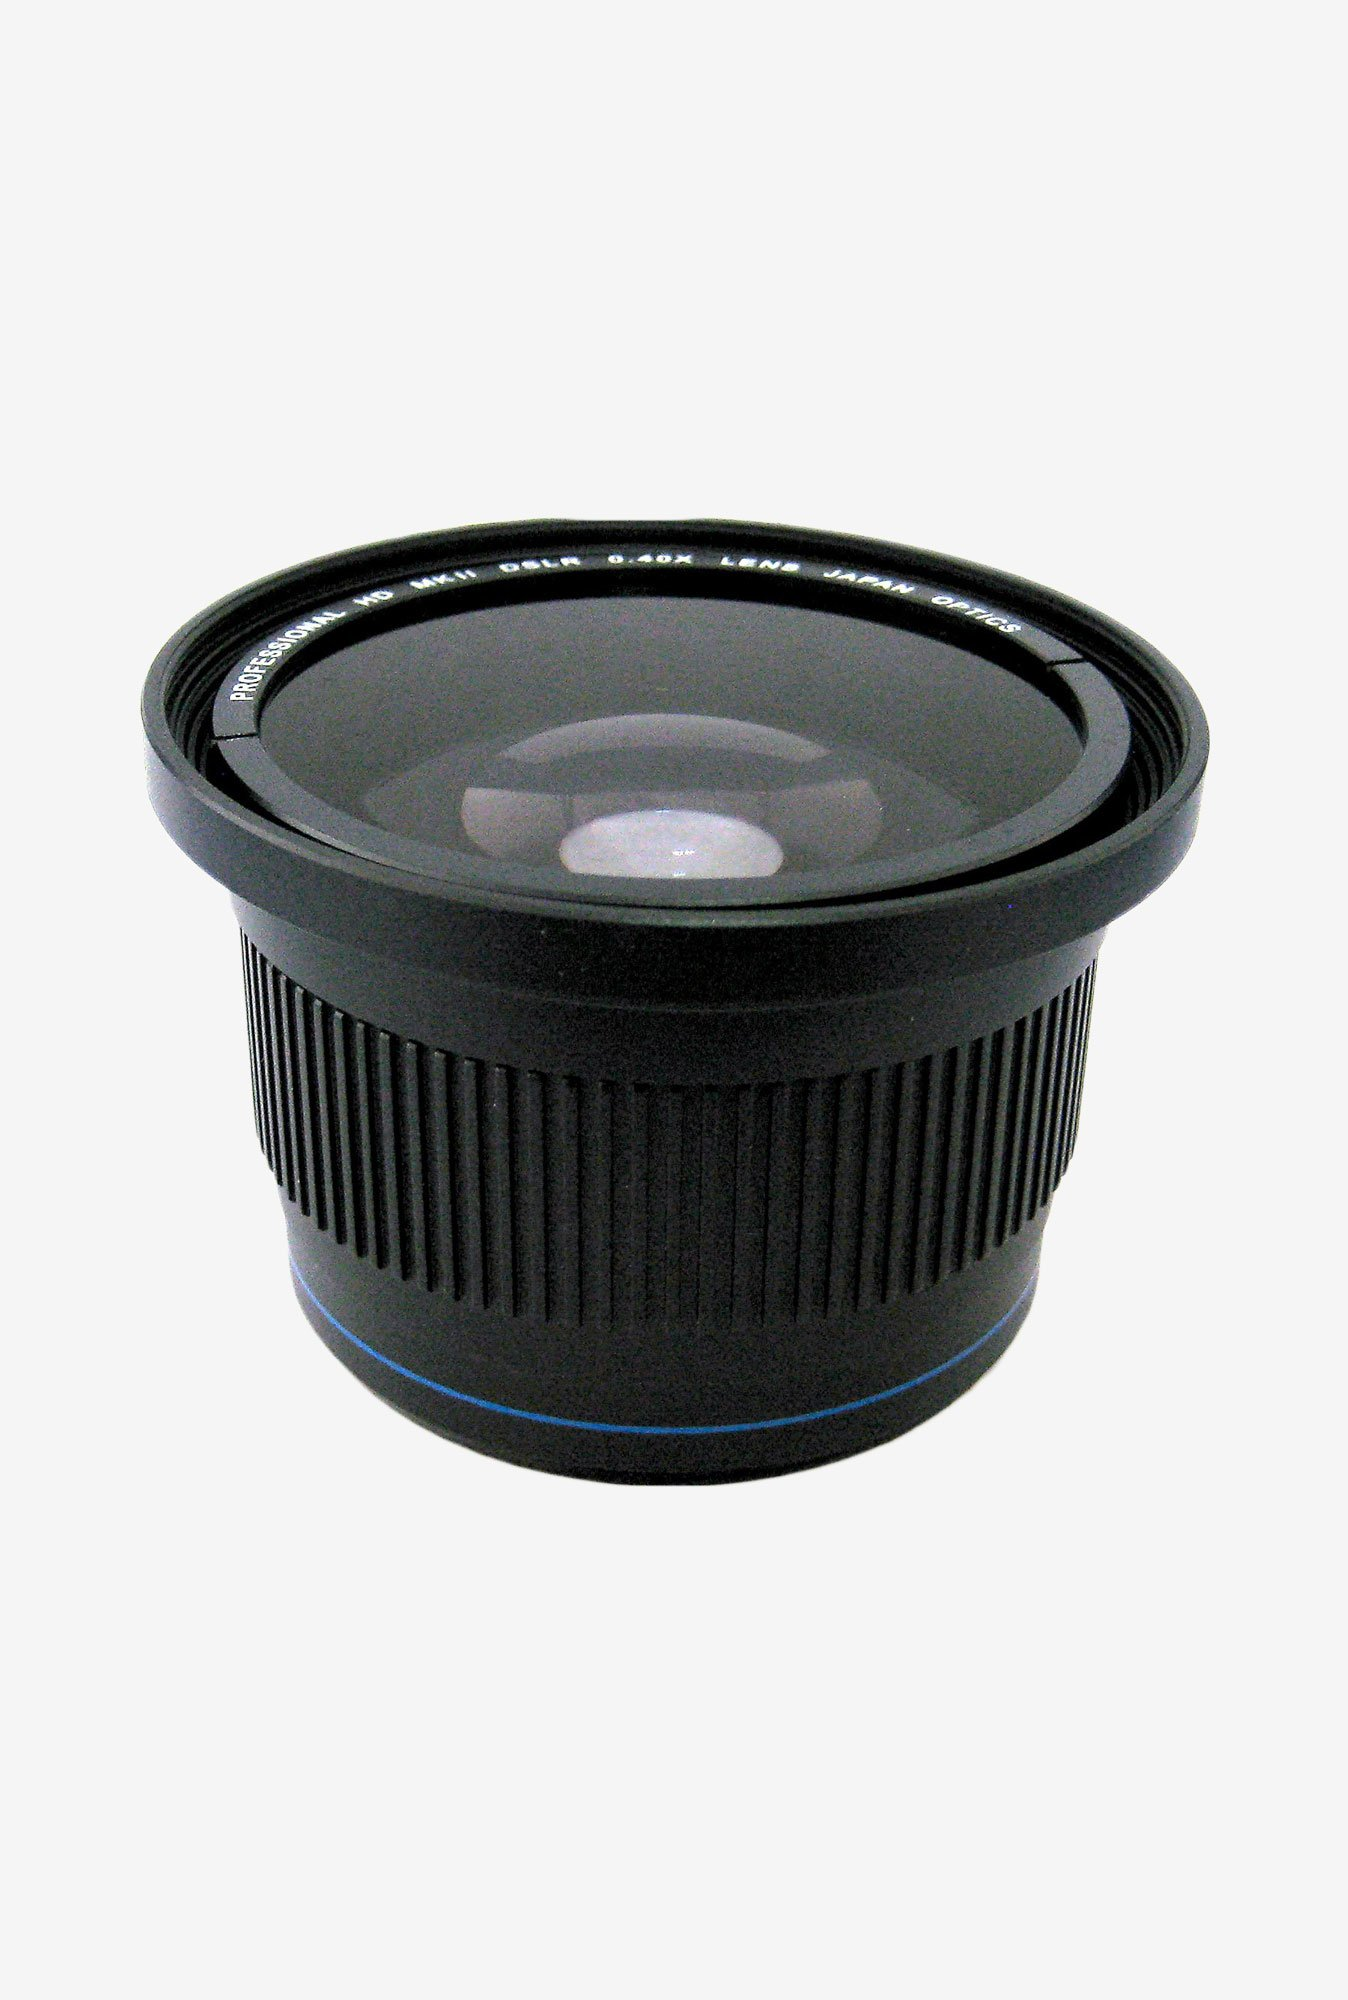 Zeikos Ze-3458F 0.40X High Definition Fisheye Lens (Black)